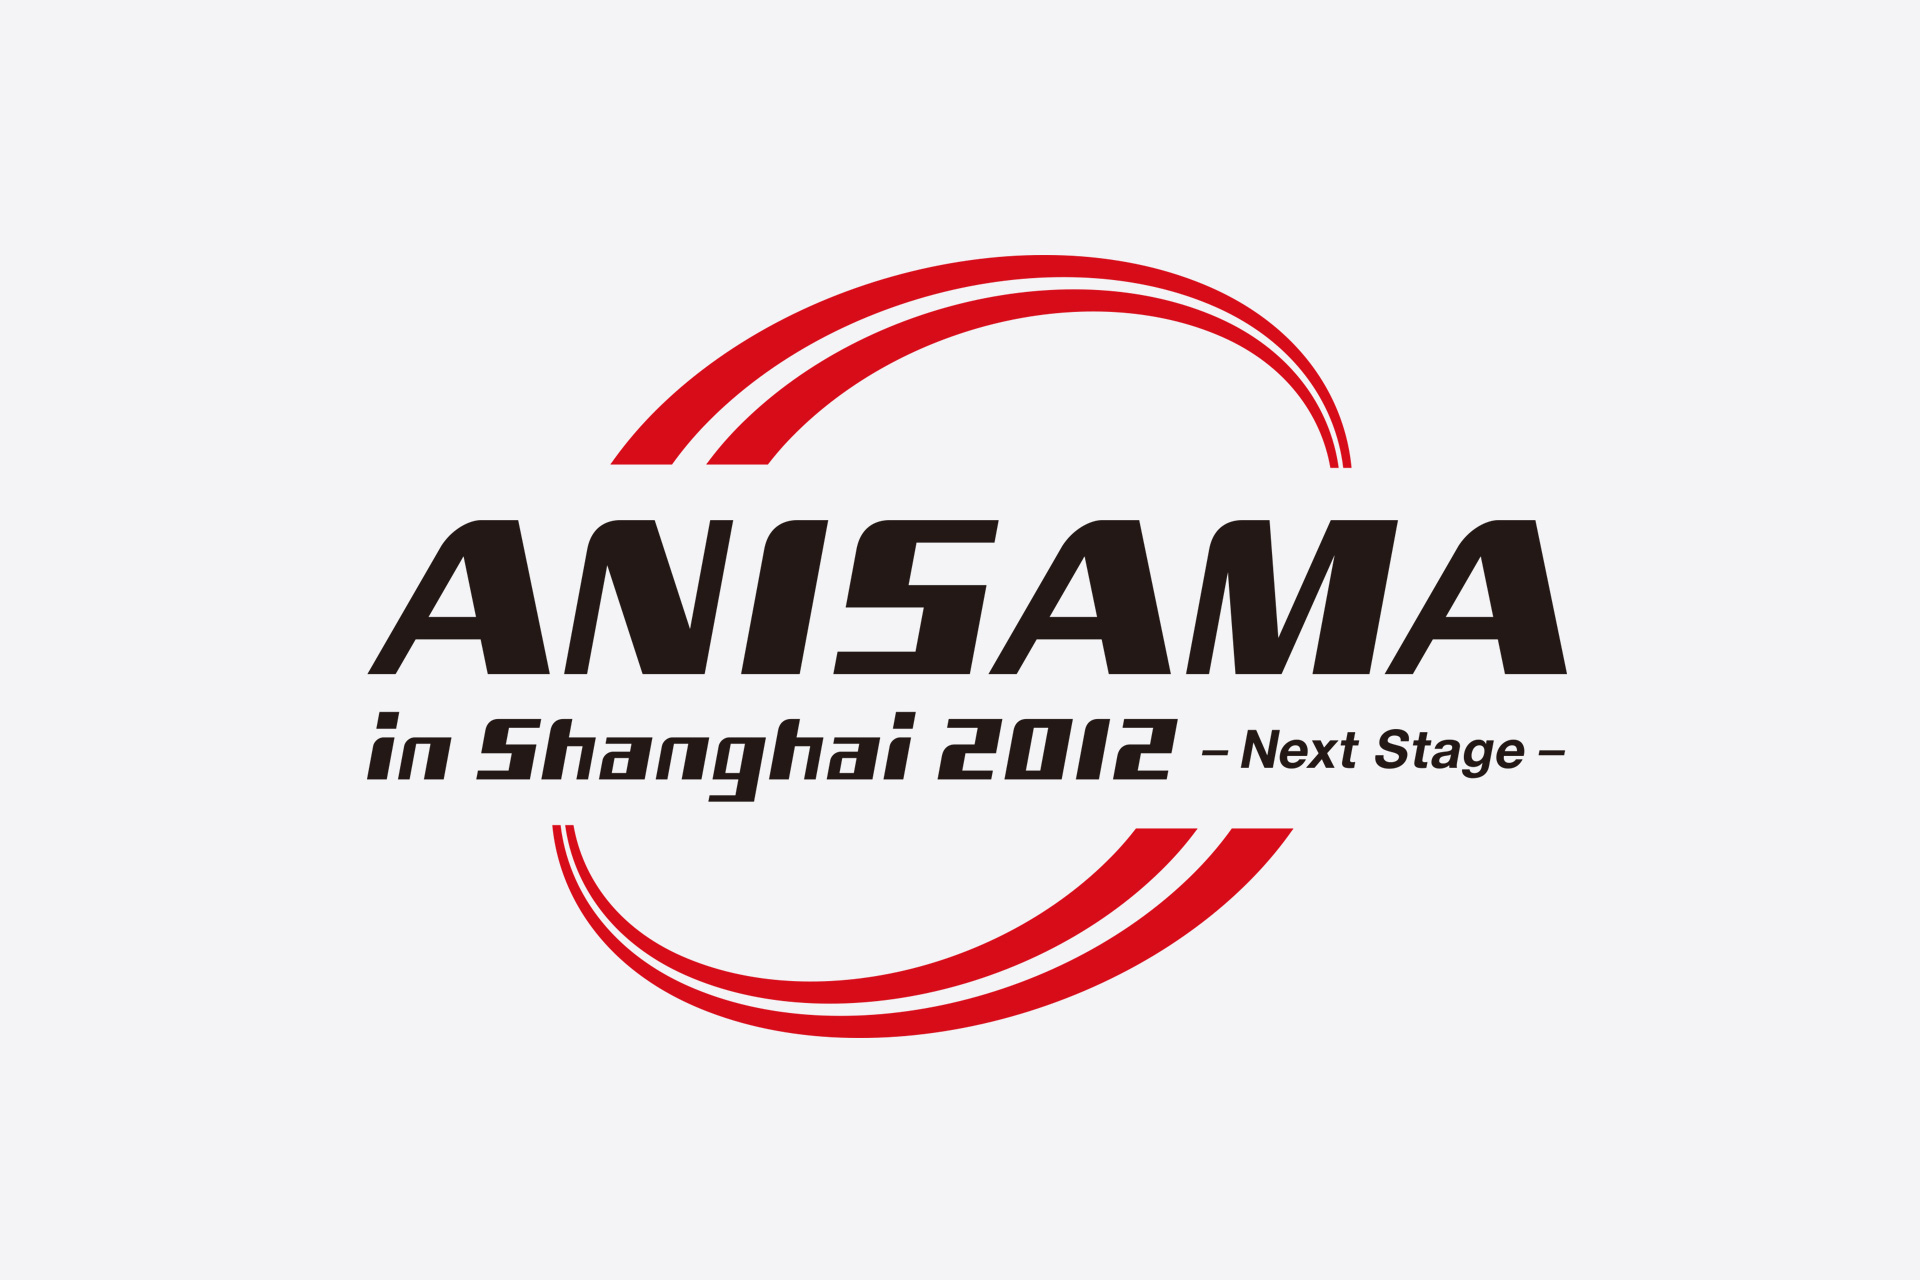 ANISAMA in Shanghai 2012 -Next Stage-